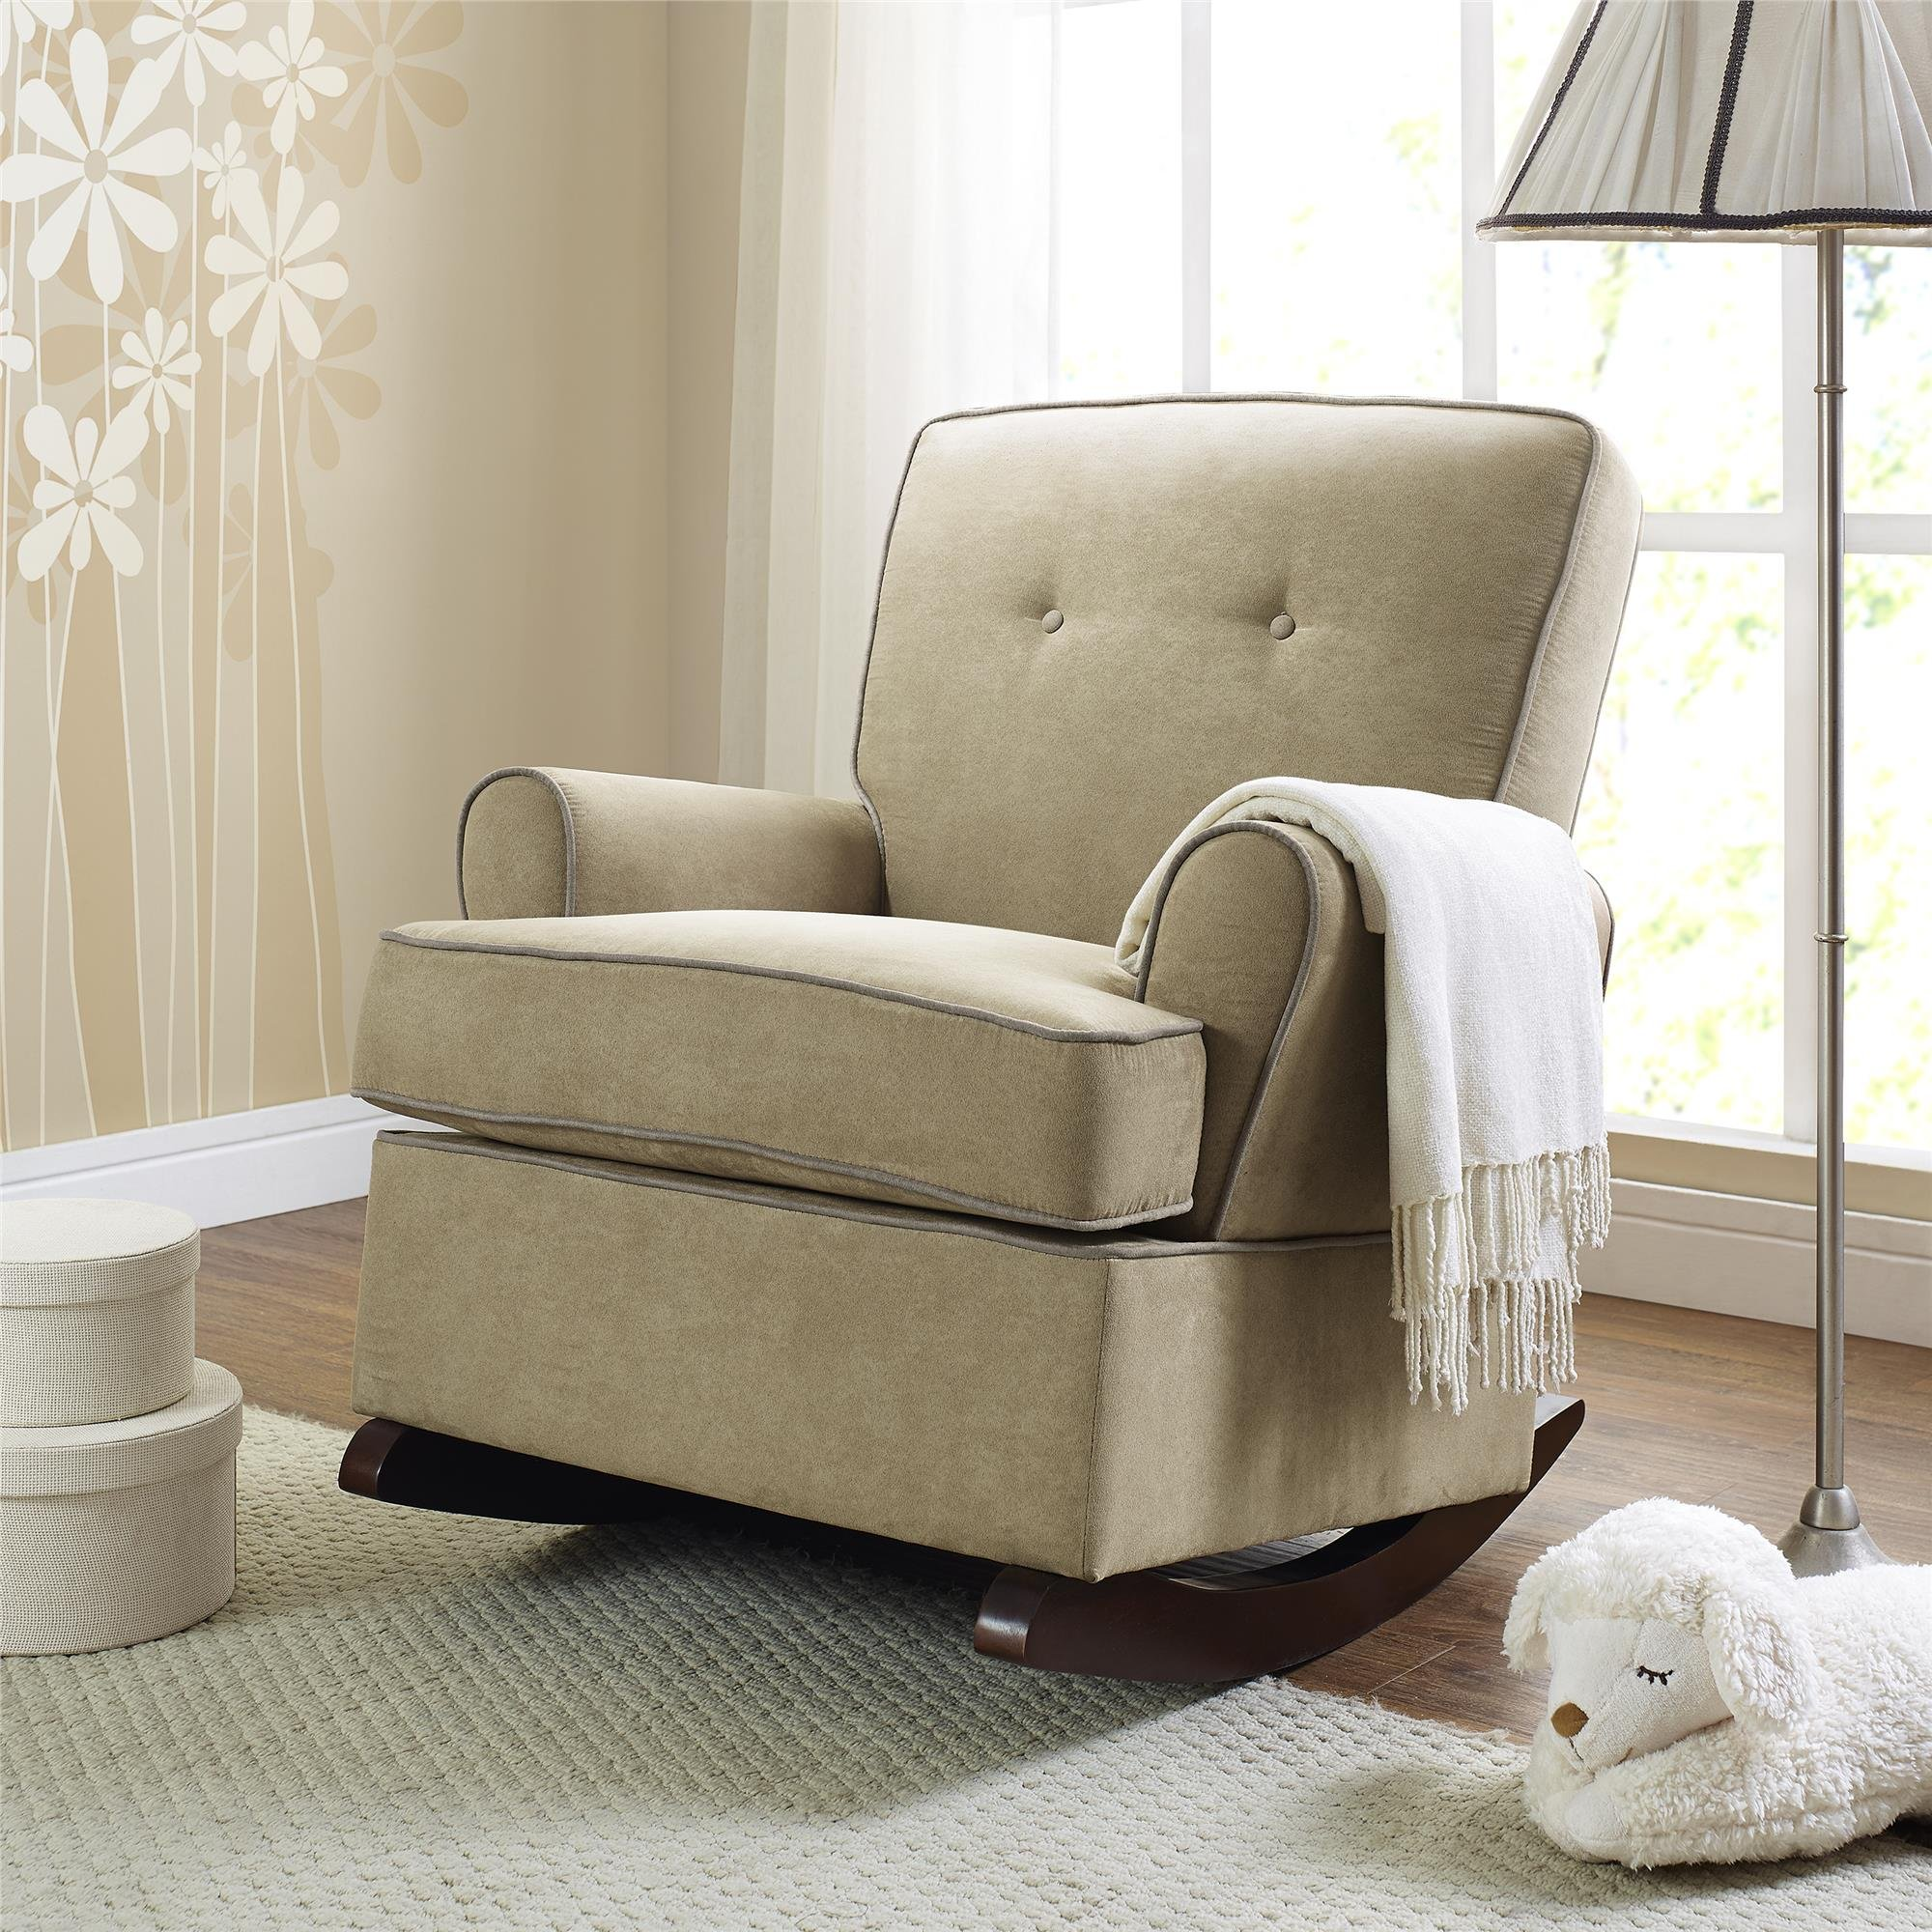 Baby Relax The Tinsley Nursery Rocker Chair, Beige by Baby Relax